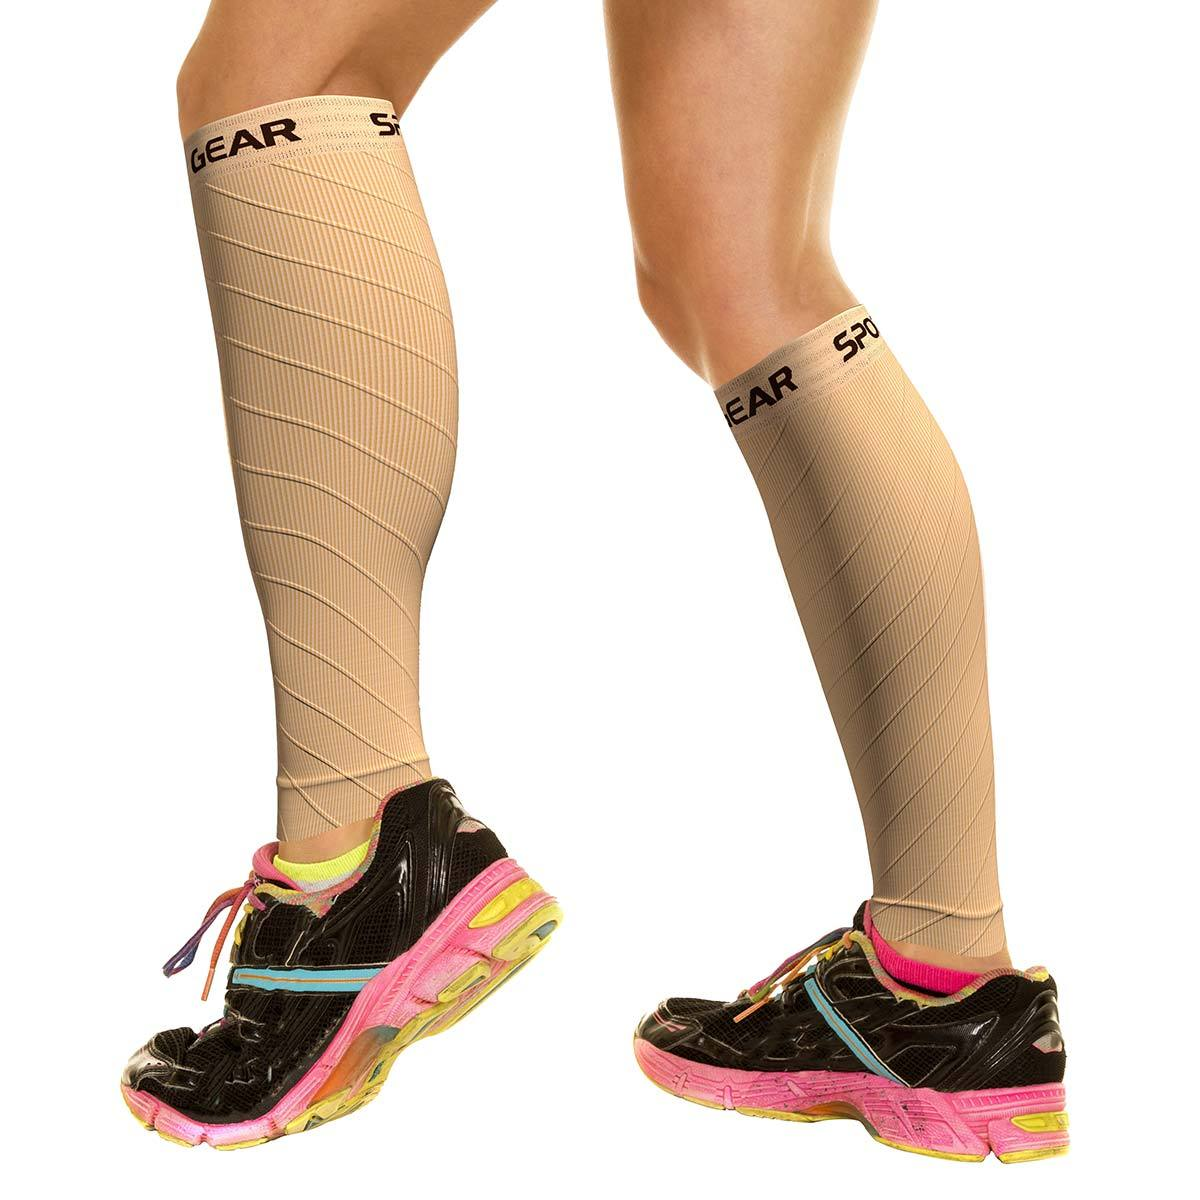 Calf Sleeves - Nude Beige (1 Pair)-Physix Gear Sport